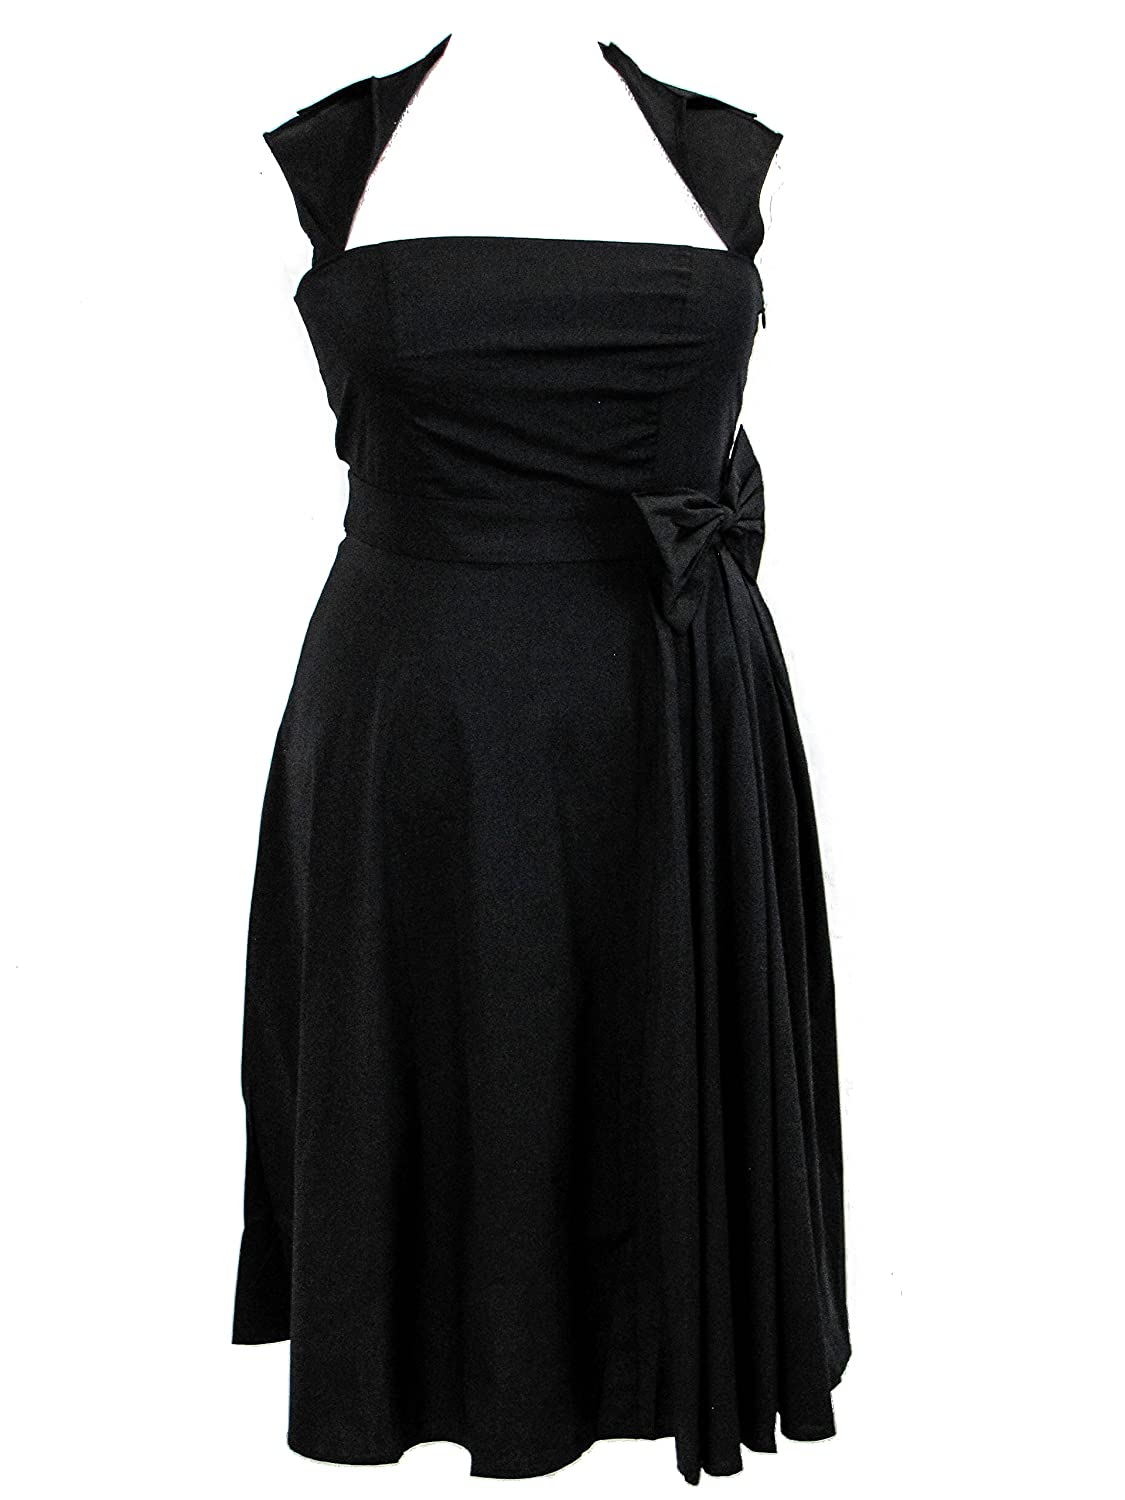 Plus Size Black Retro Rockabilly Swing Belted Pleat Dress 1X 2X 3X 4X